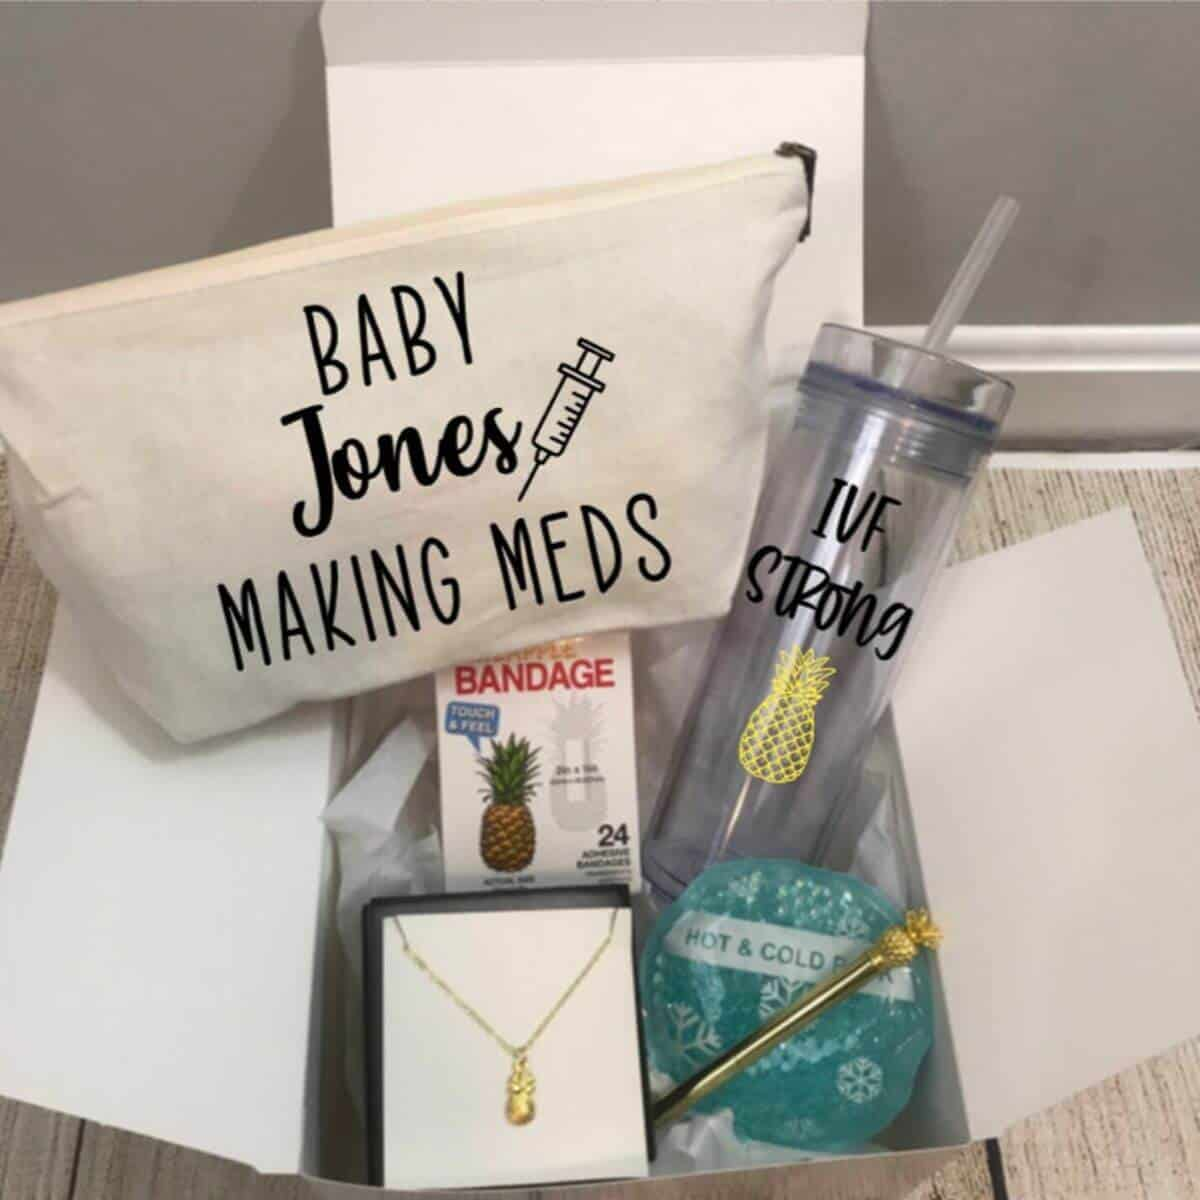 gift box full of gifts for IVF including an IVF medicine bag, a cup, a necklace, and more